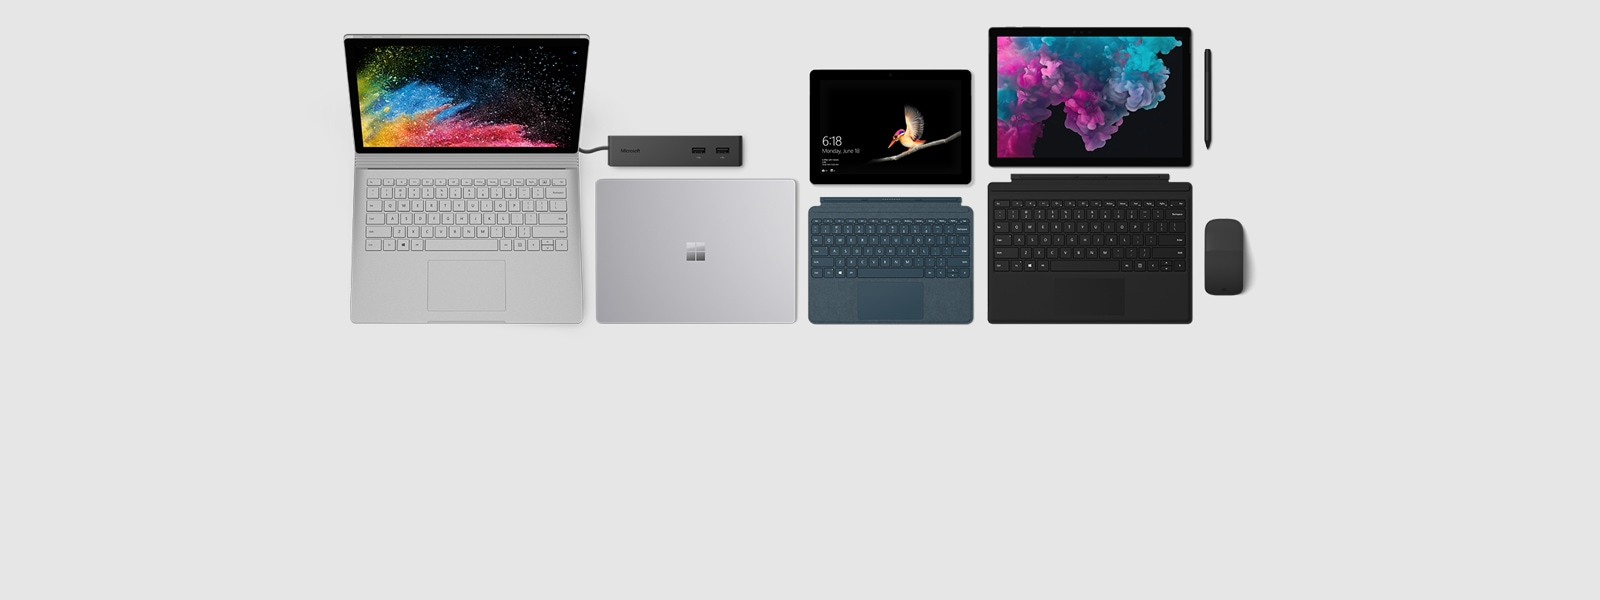 Surface Book, Surface laptop in platinum, Surface dock, Surface Go with Cobalt type cover Surface Pro 6 with black accessories